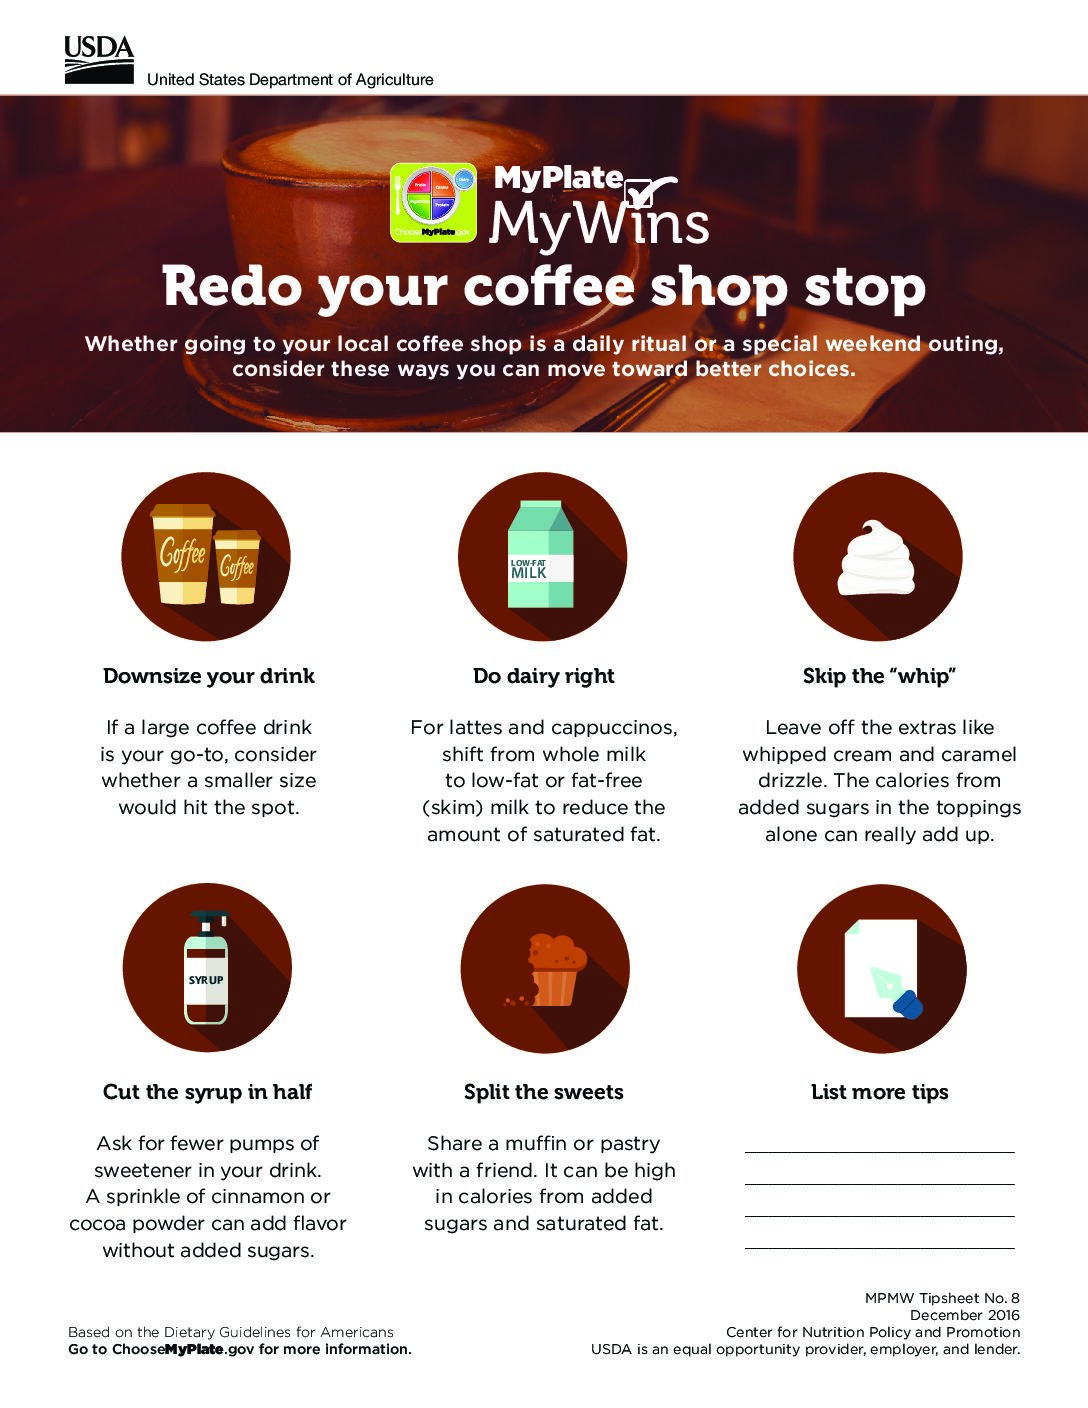 "Redo your coffee shop stop and consider these top 5 tips to help you make healthier choices! <a href=""https://www.snapedny.org/myplate-mywins-redo-your-coffee-shop-stop/""target=""_blank""> Click here!</a></p>"